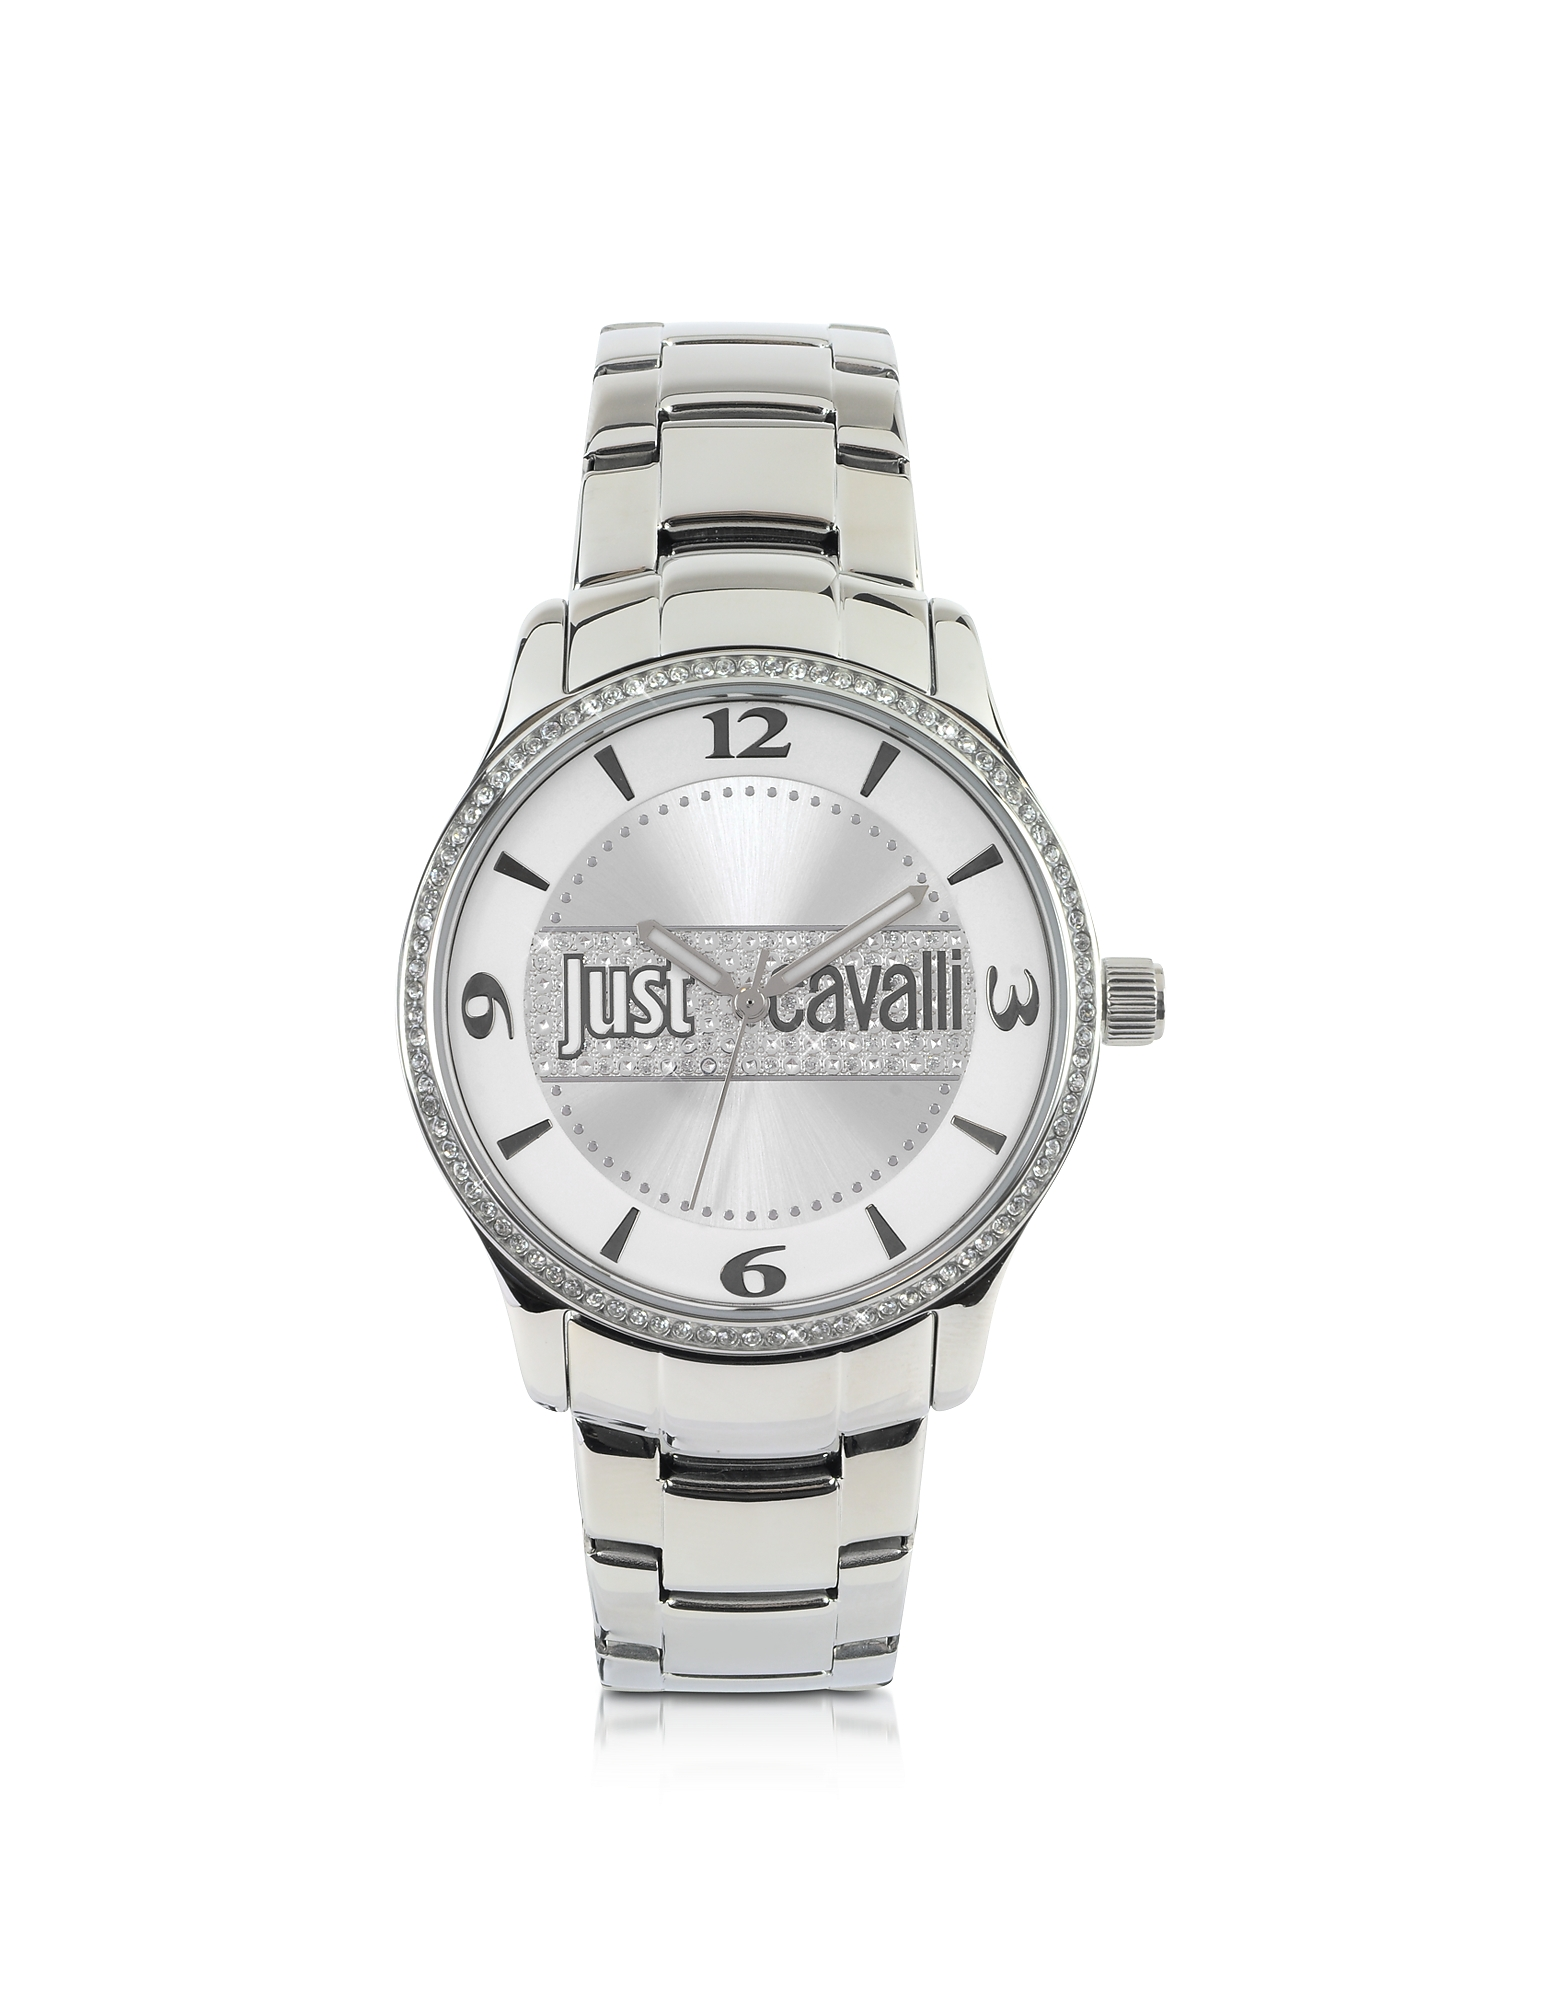 Just Cavalli Women's Watches, Huge Collection Silver Dial Stainless Steel Watch